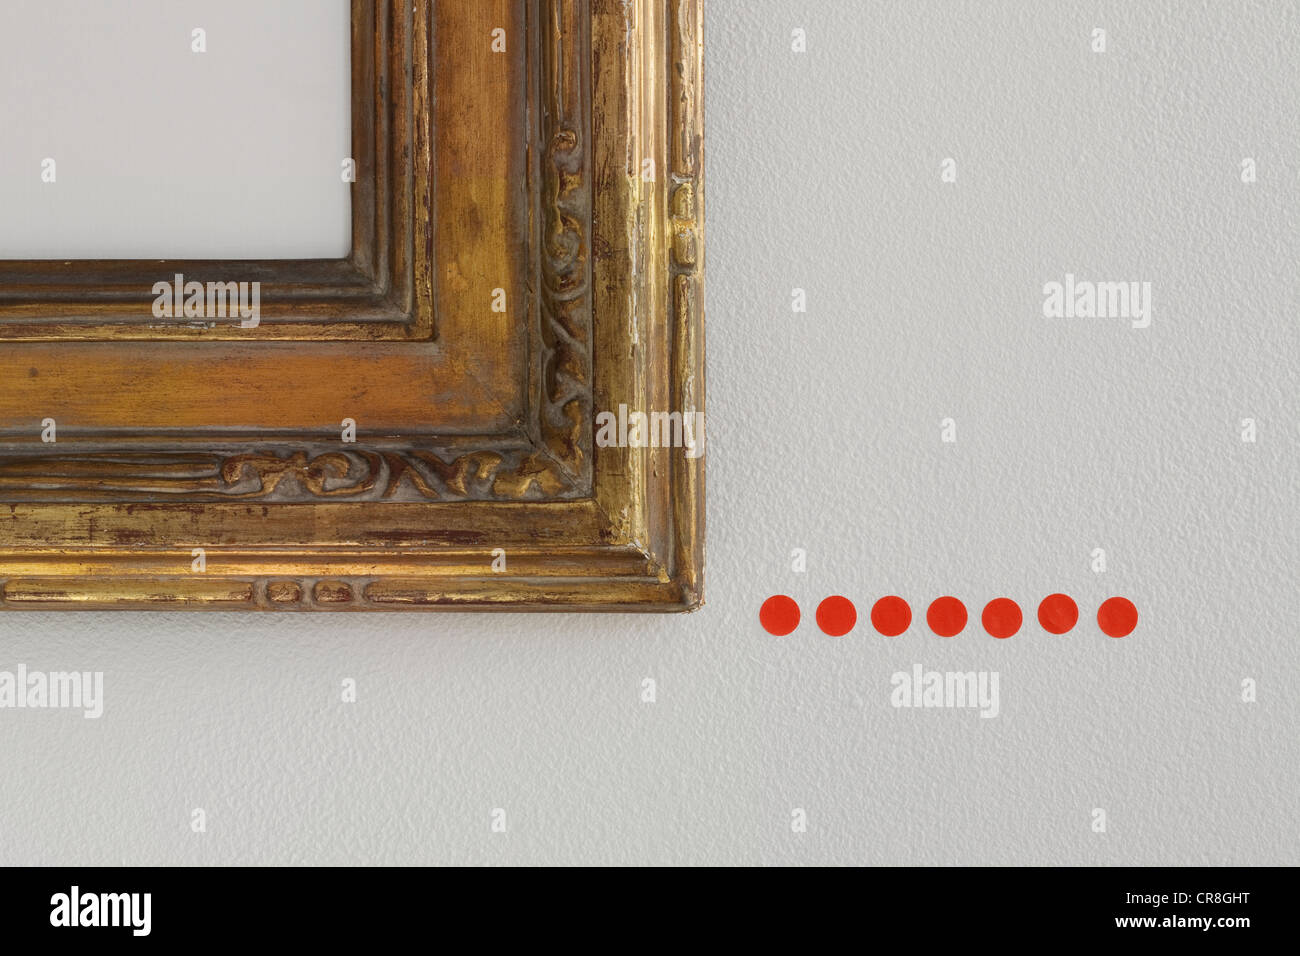 Red sold dots under picture frame - Stock Image